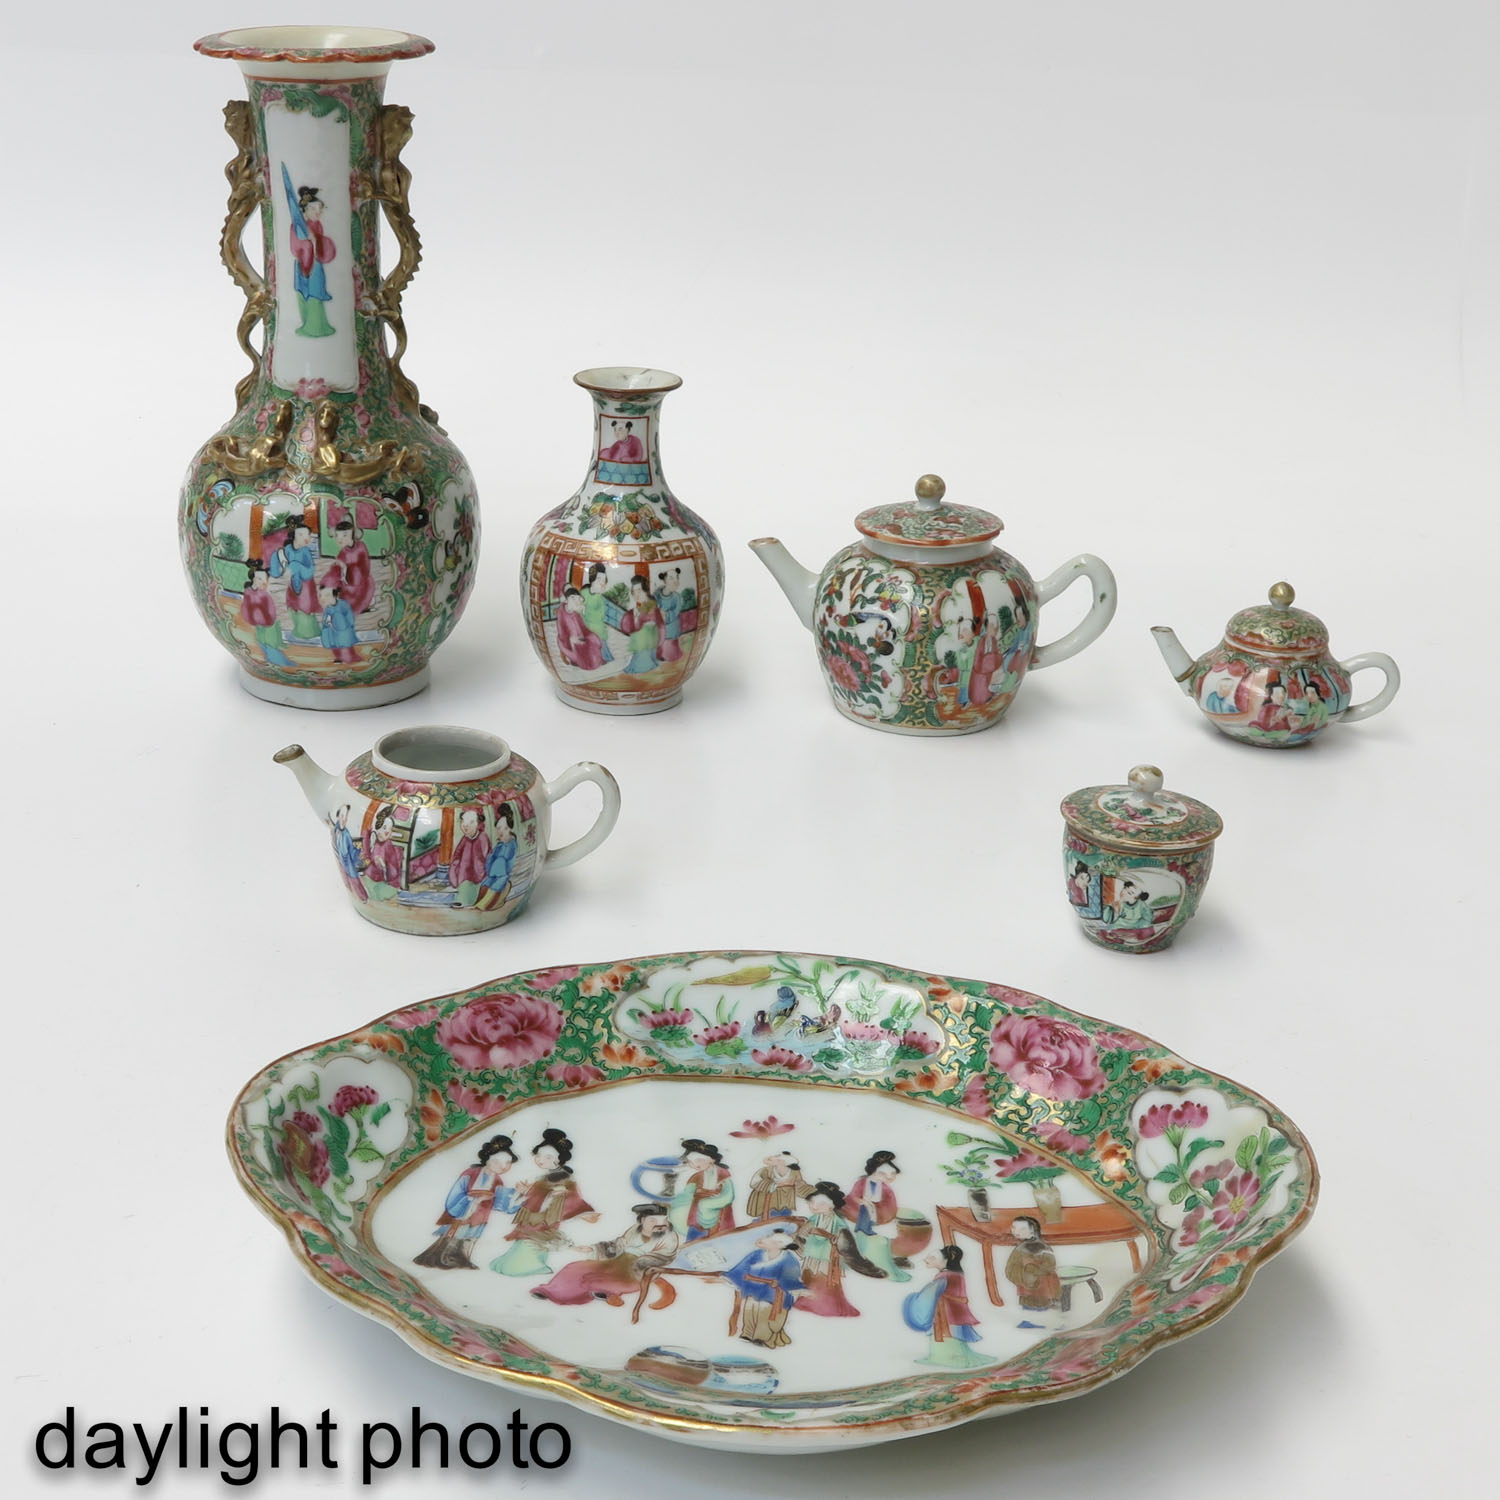 A Collection of Cantonese Porcelain - Image 7 of 10